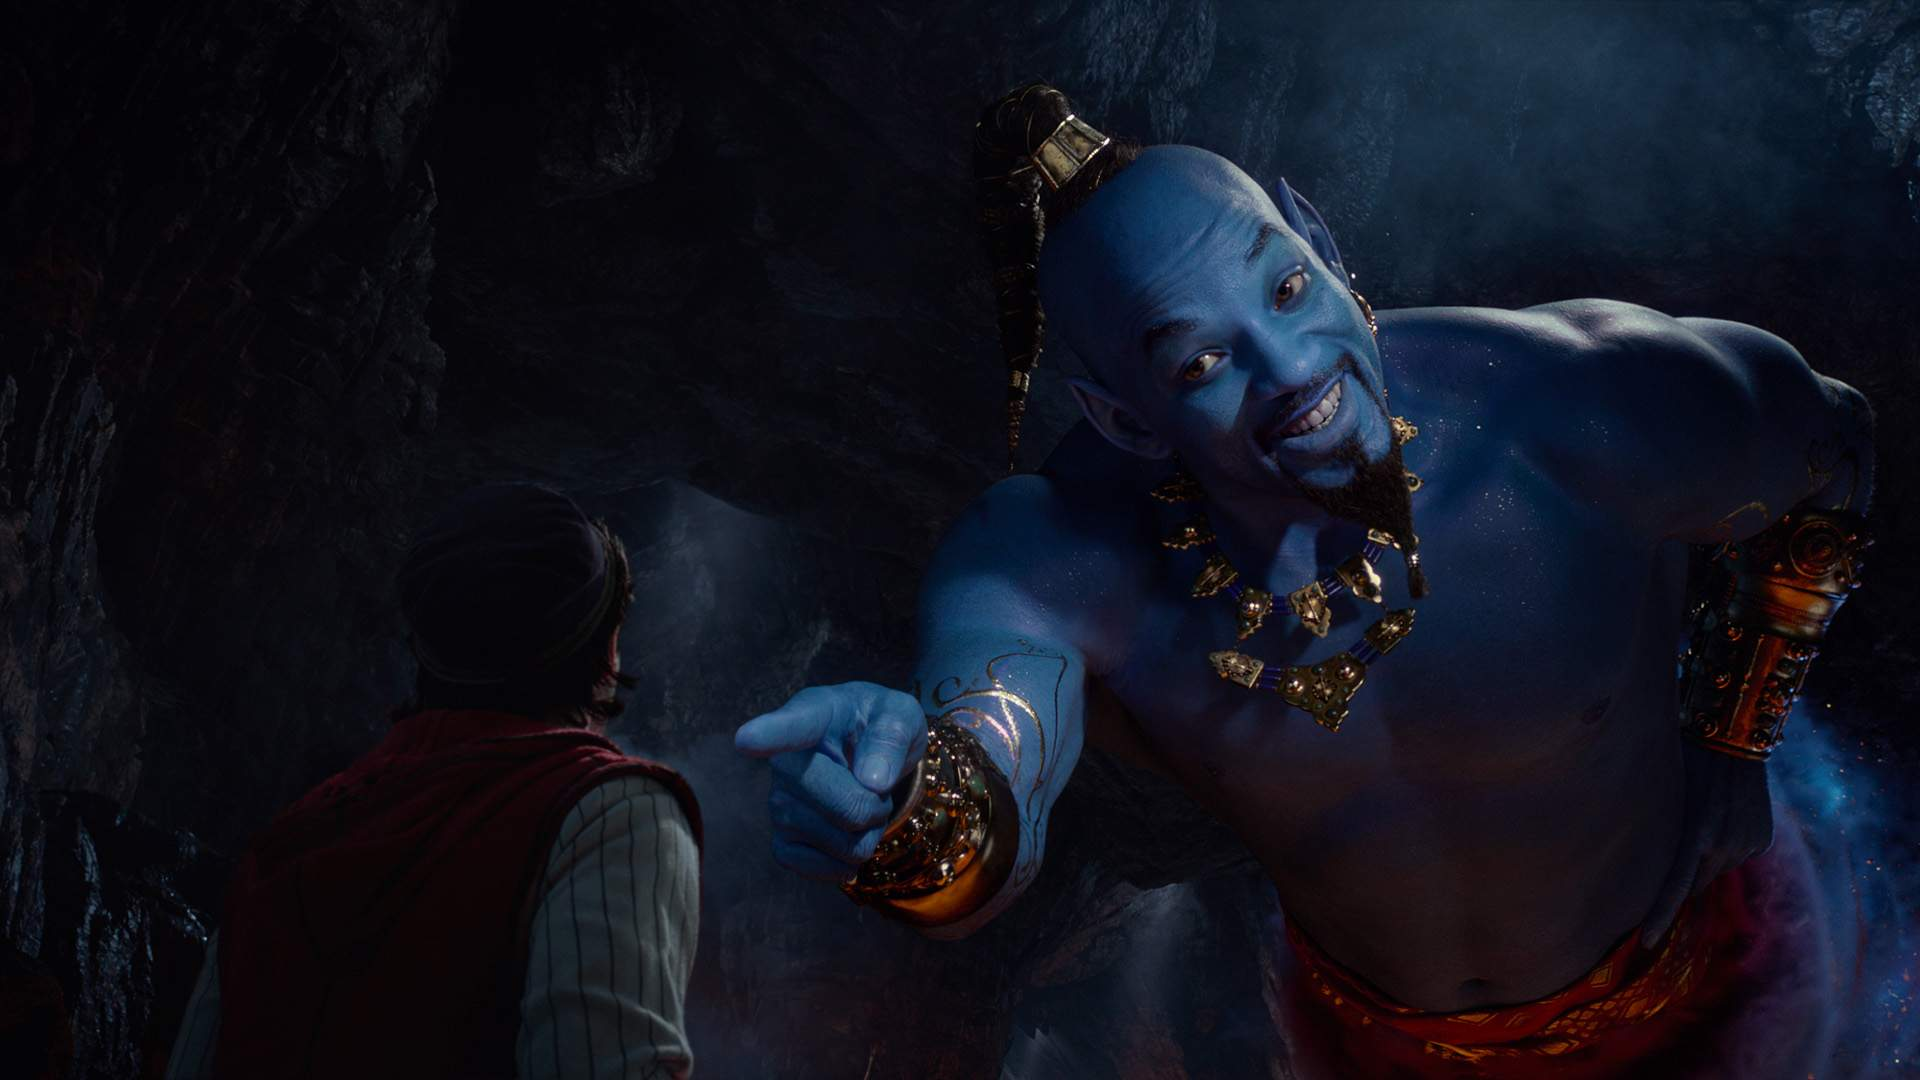 The Full Live-Action 'Aladdin' Trailer Will Take You to a Whole New World